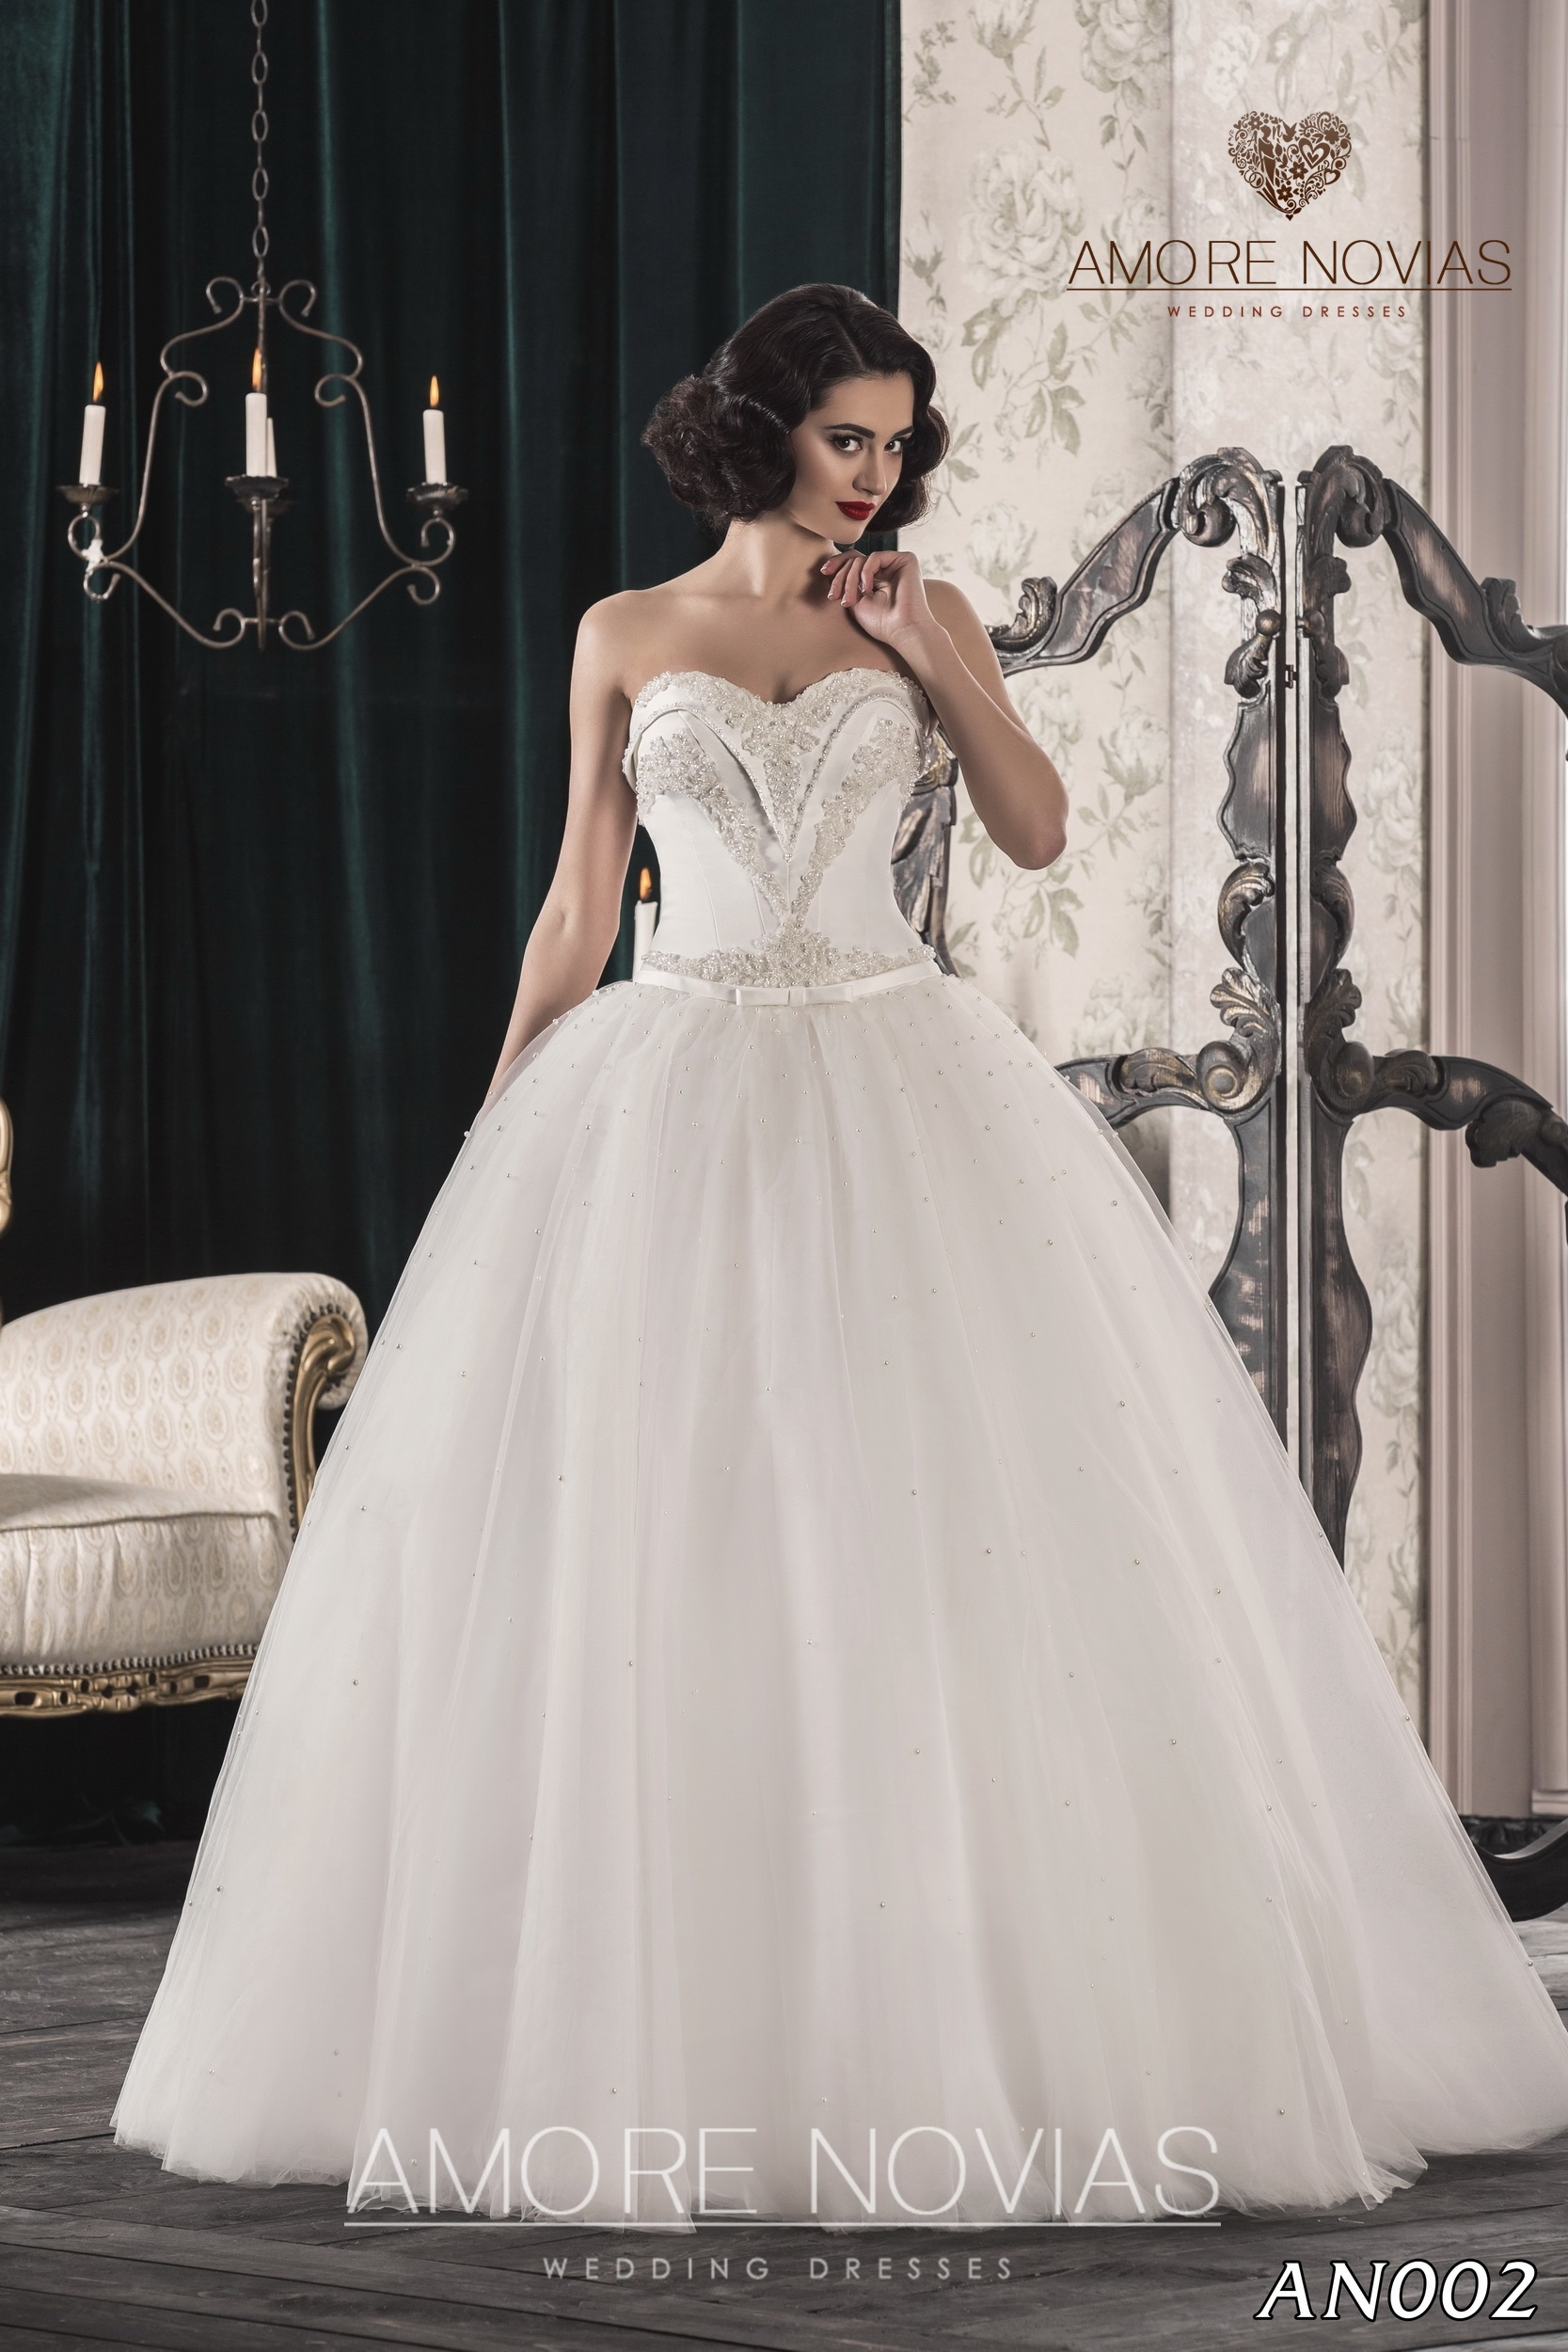 https://amore-novias.com/images/stories/virtuemart/product/an002.jpg